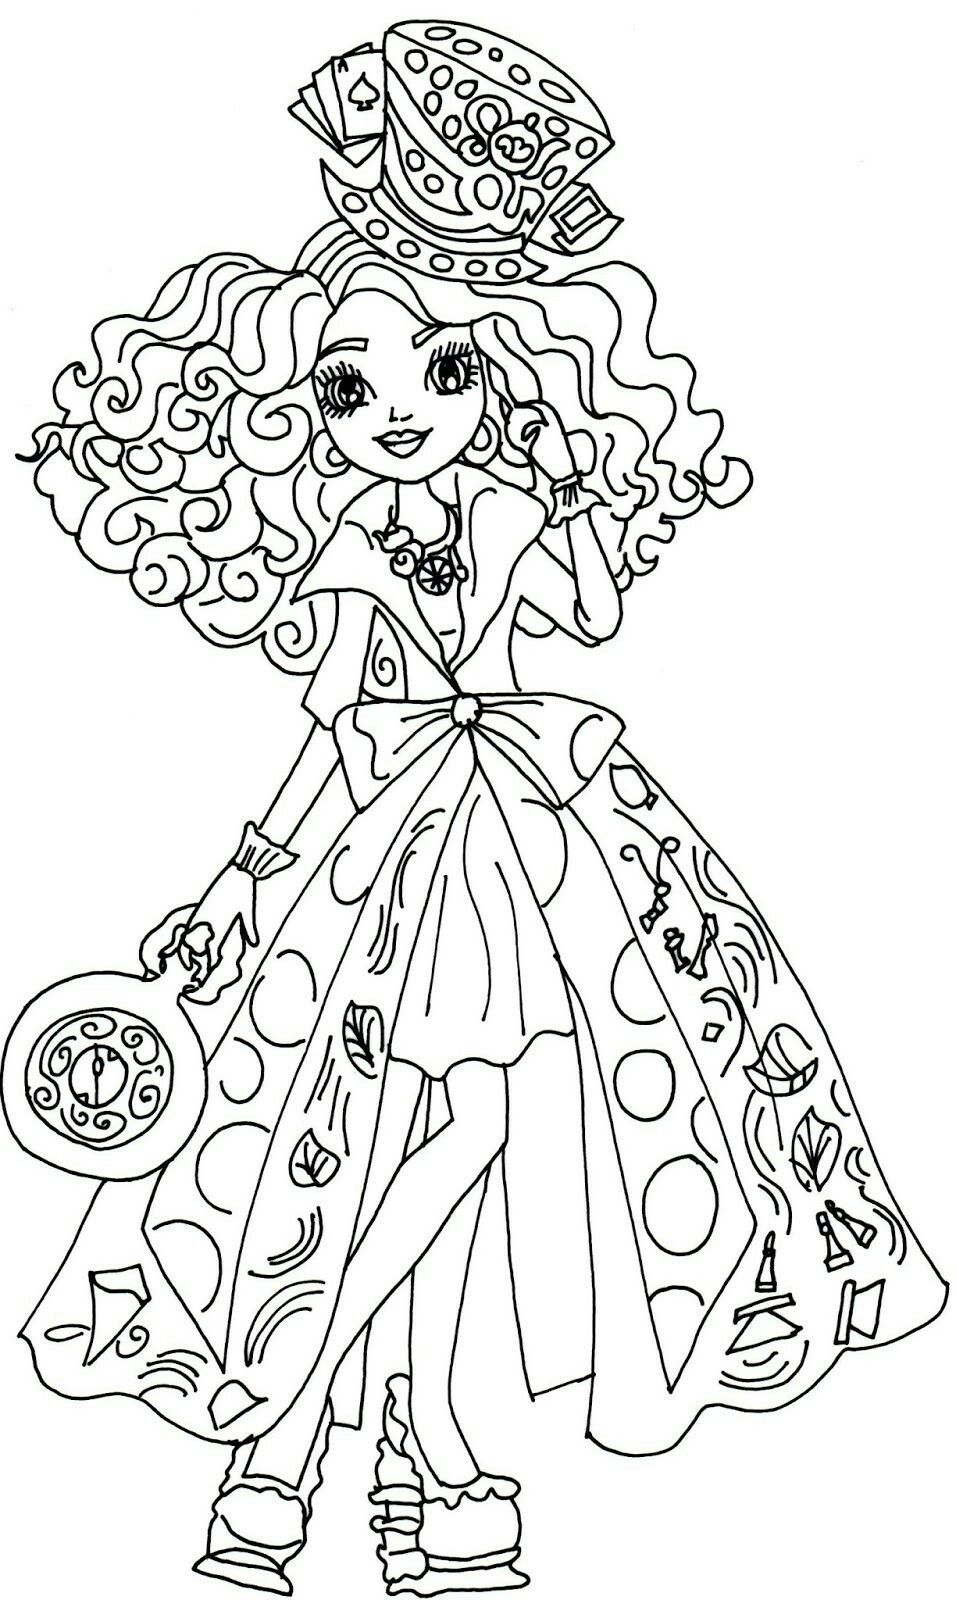 pin by april dikty on ever after high pinterest